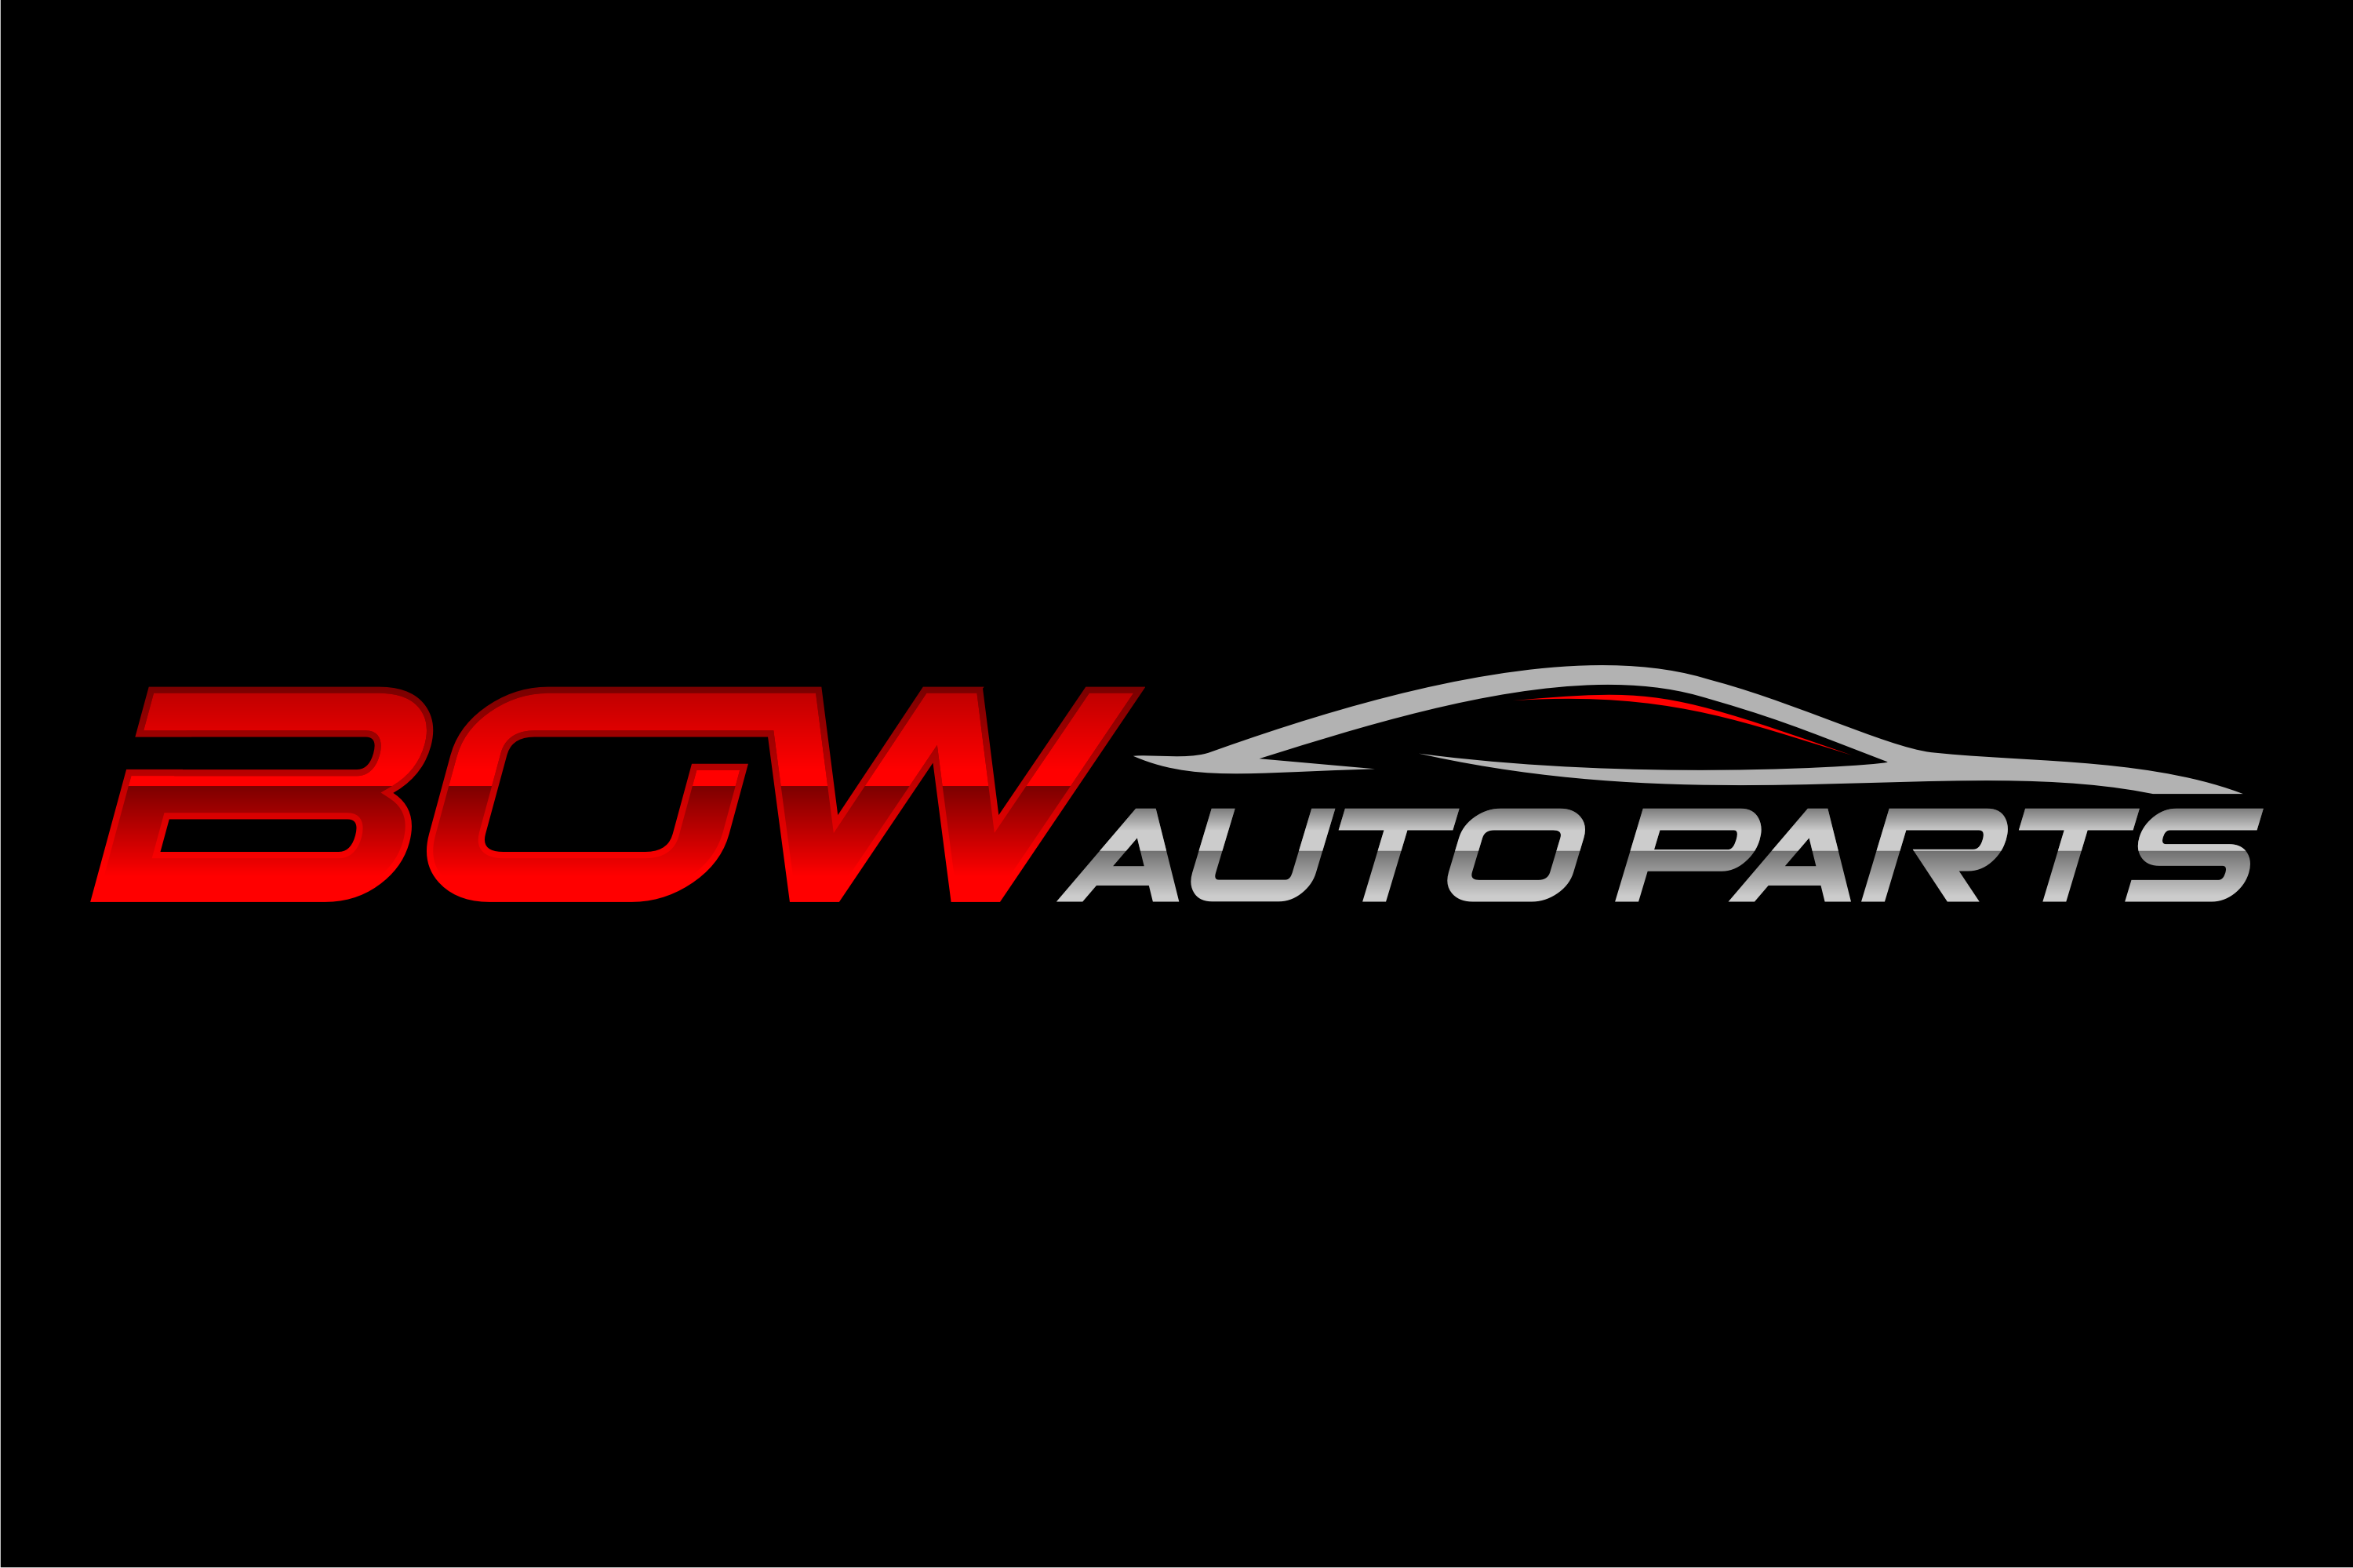 Create a hip new modern logo for Bow Auto Parts